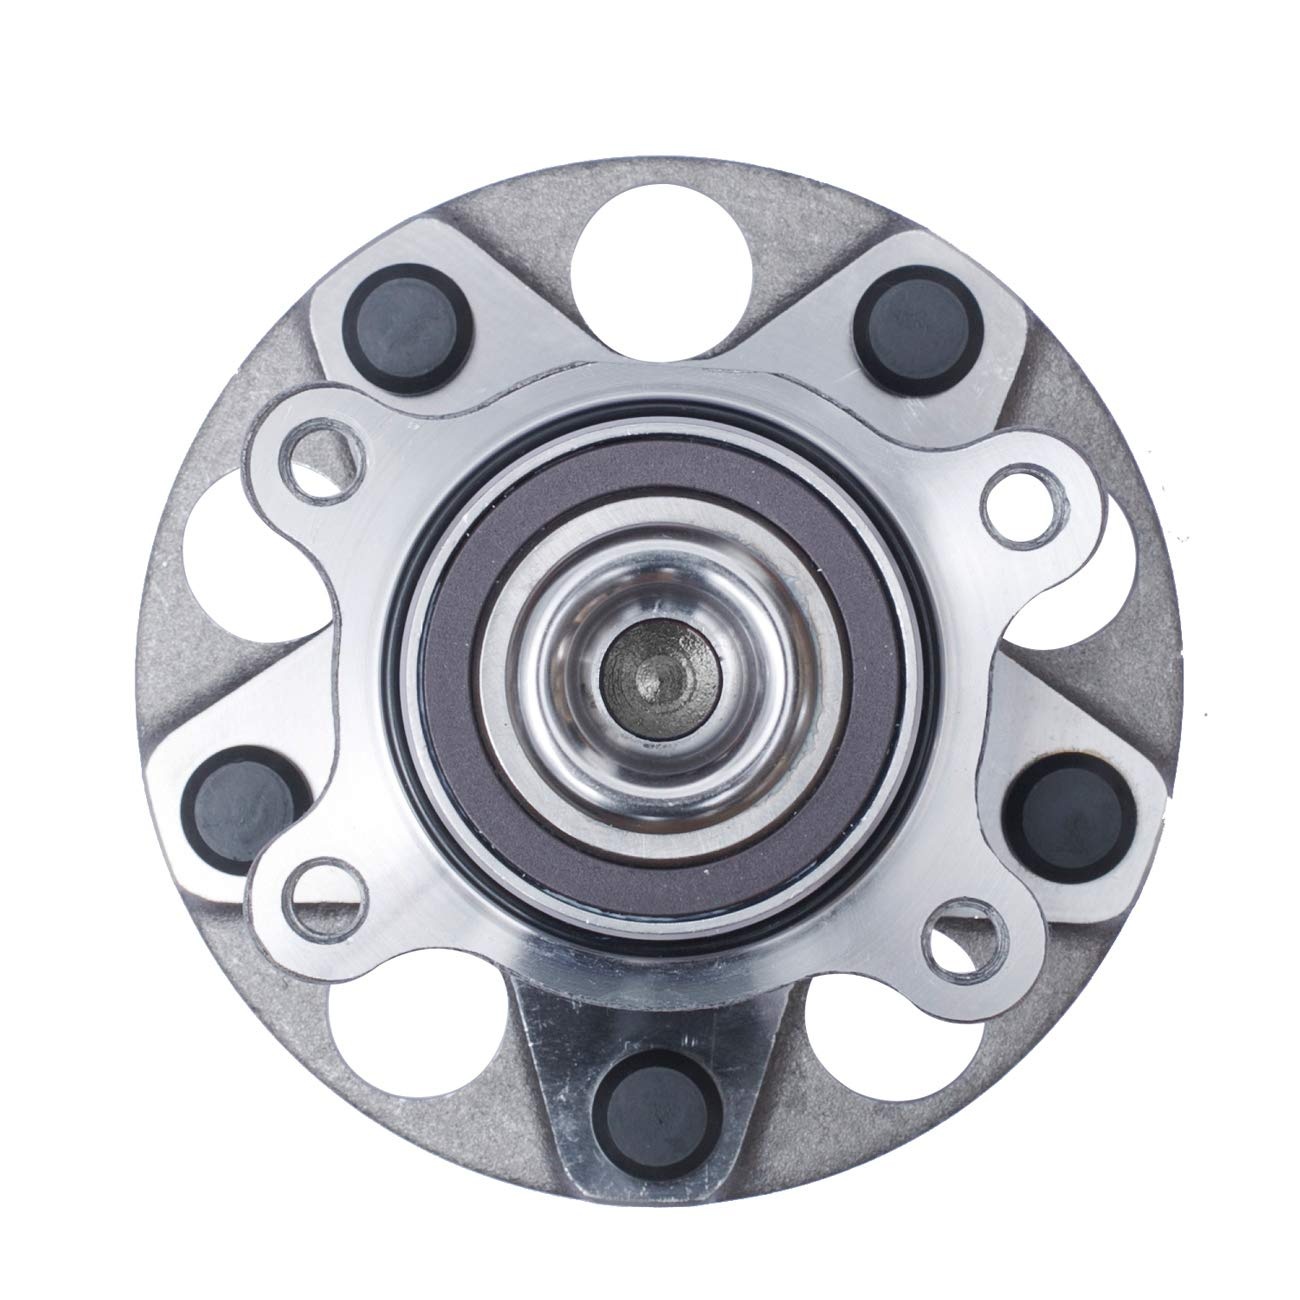 5 Lug W//ABS 512257 TUCAREST 512256 Rear Wheel Bearing and Hub Assembly Compatible 2006-2011 Acura CSX 06-11 Honda Civic